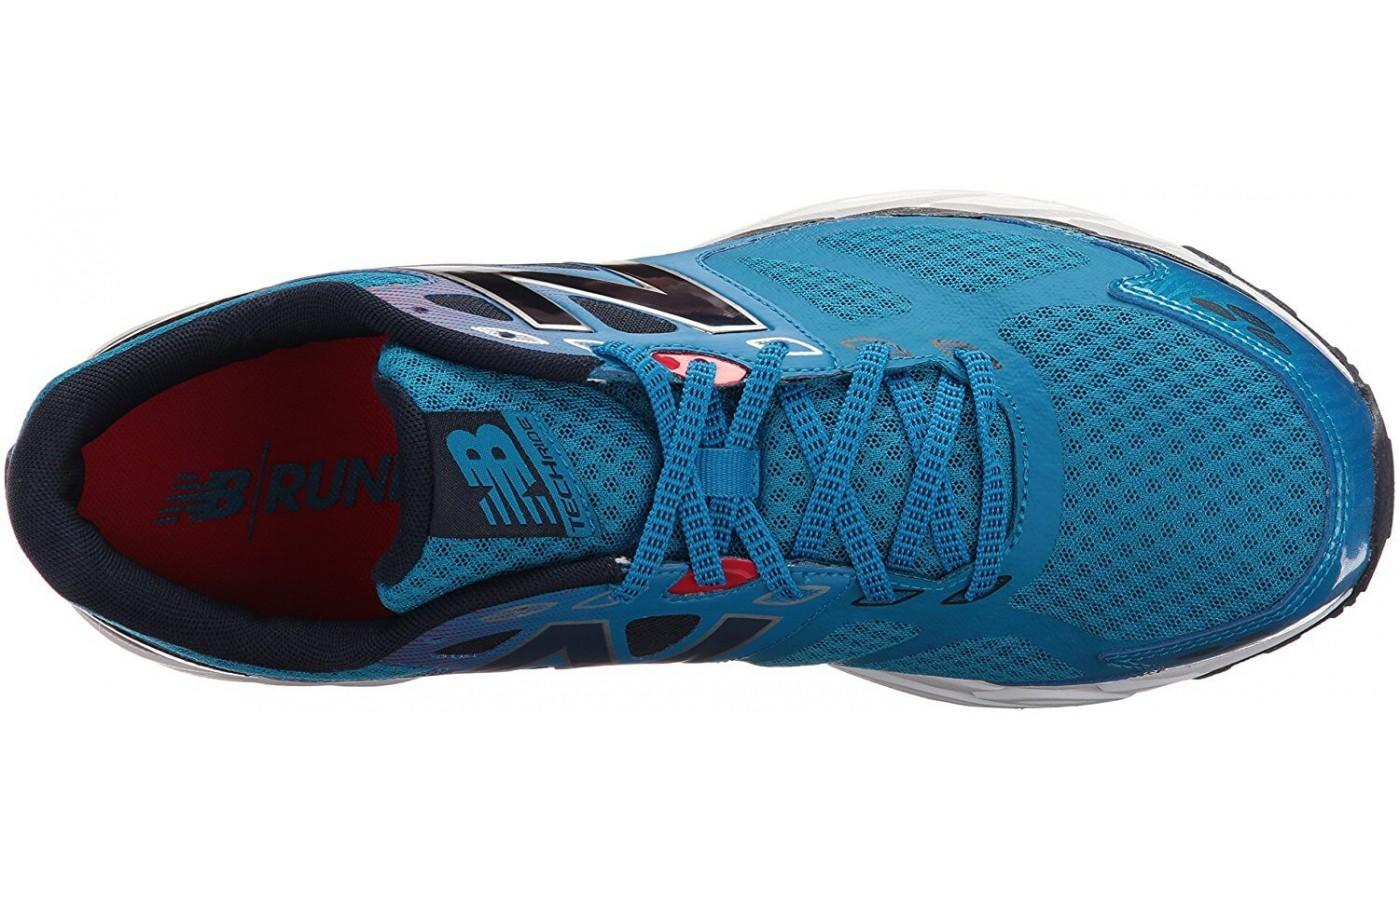 the New Balance 680 v3 offers a secure and protected ride